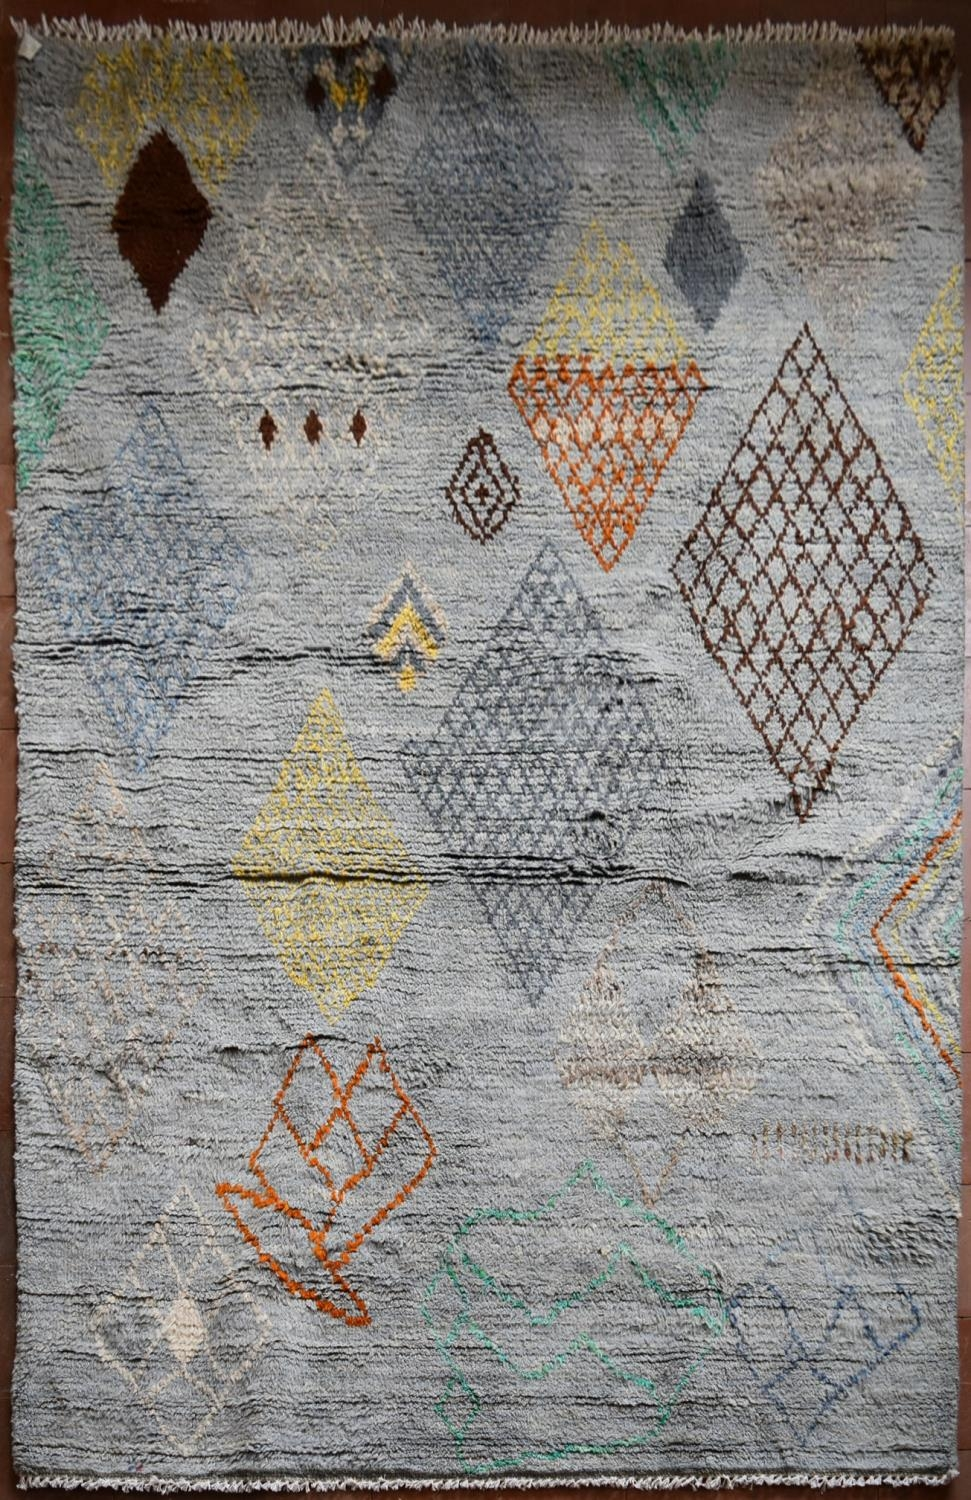 A Moroccan style rug with abstract diamond patterns across a powder blue ground. L.245xW.170cm